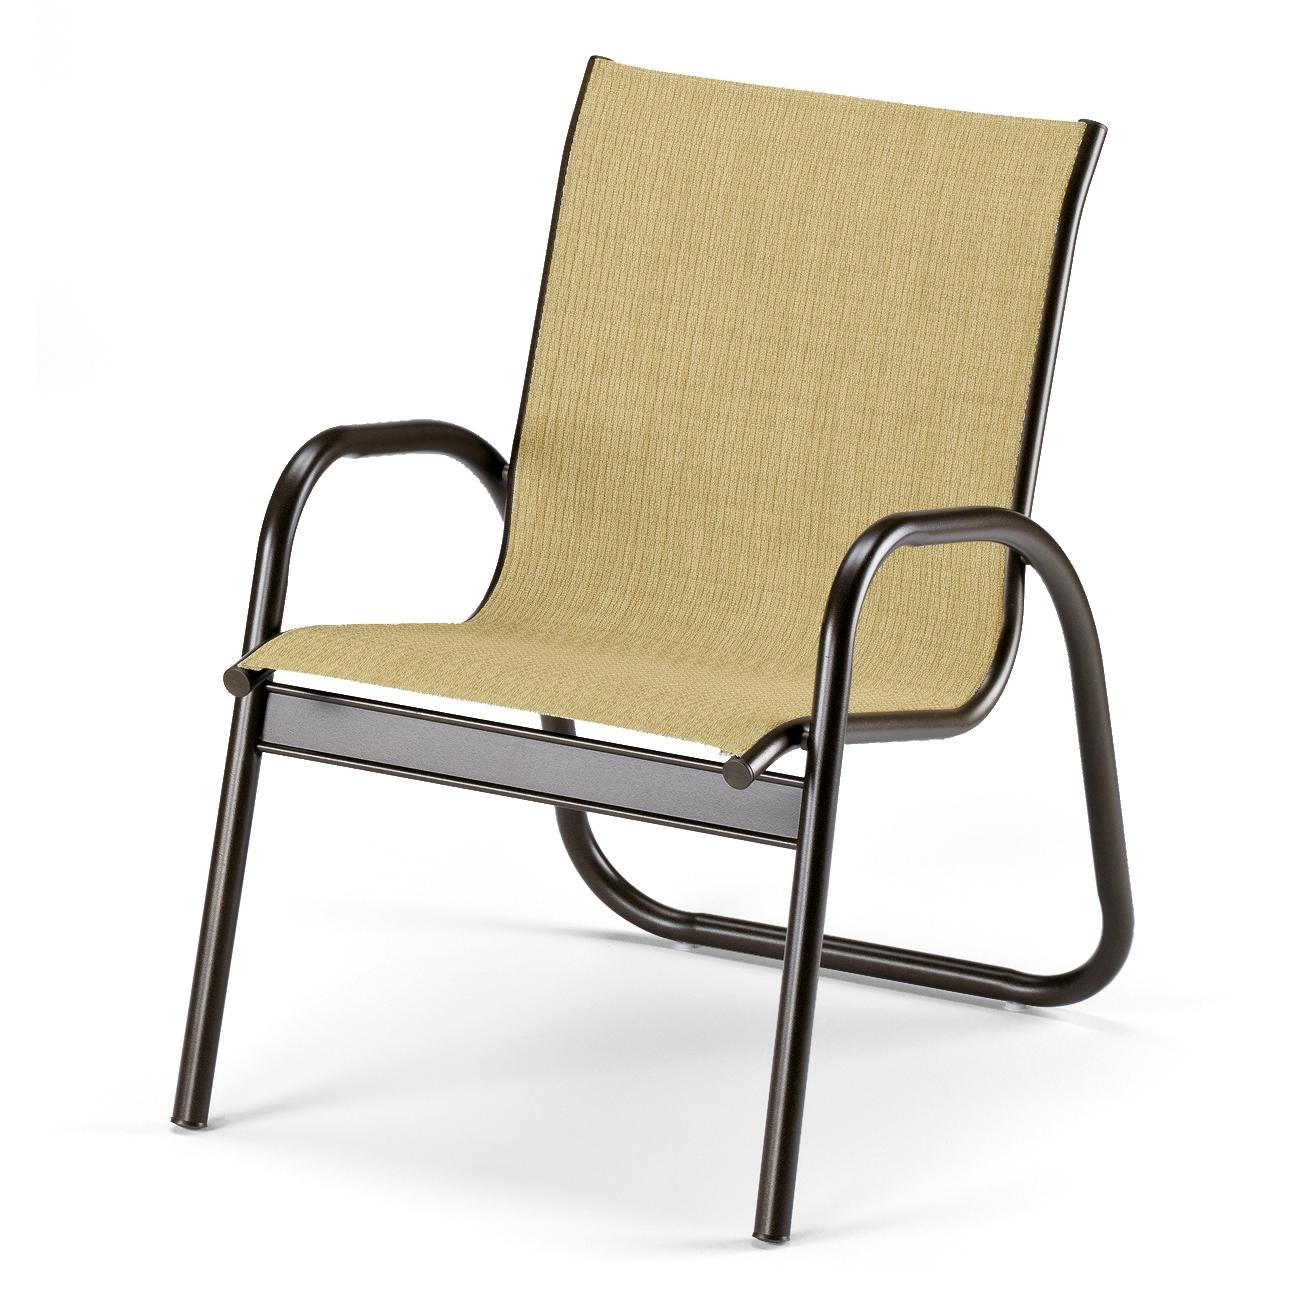 Image of: Sling Patio Chairs Design